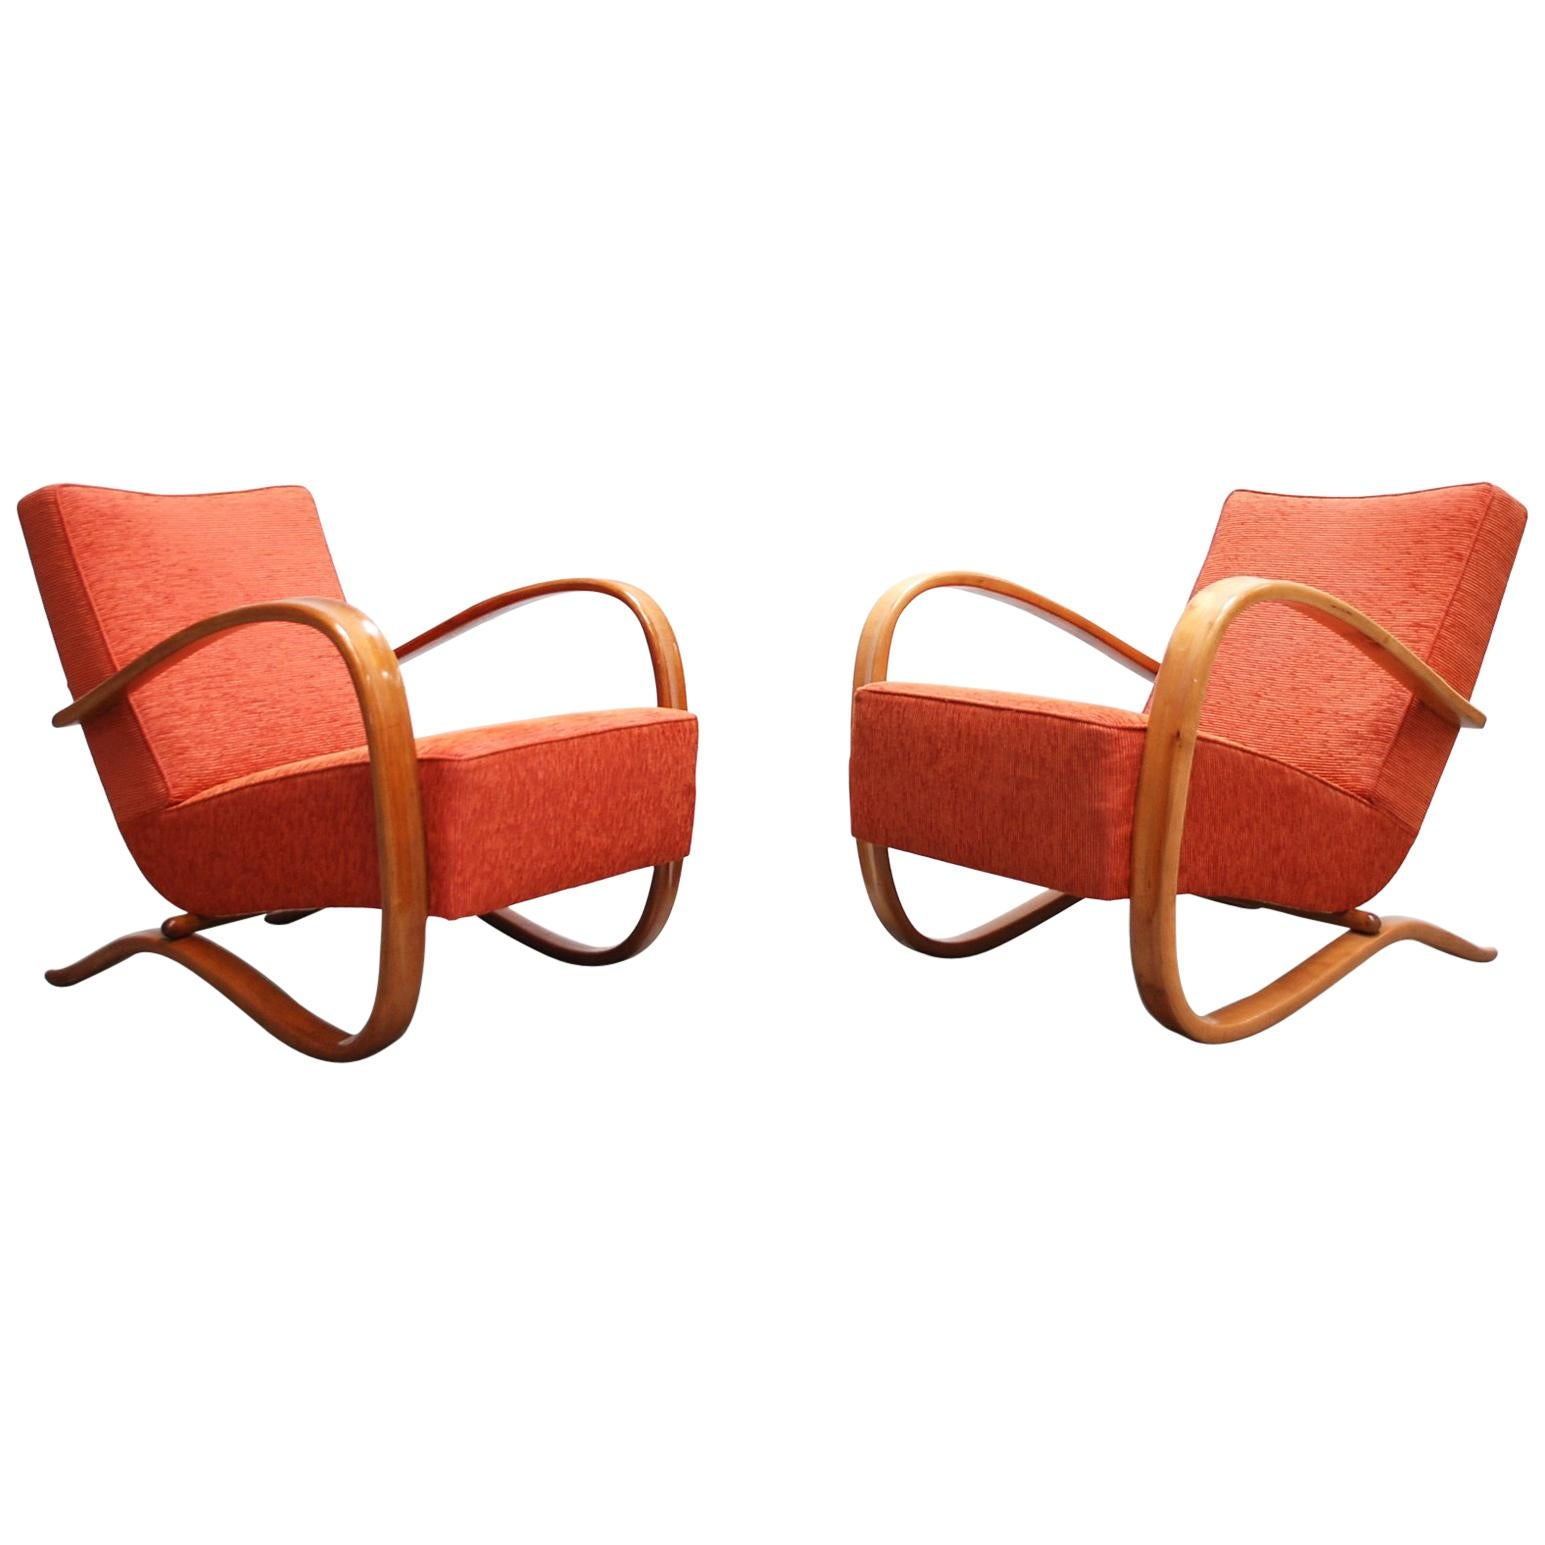 Jindrich Halabala Model H269 Pair of Red Armchairs for Spojené UP Zàvody